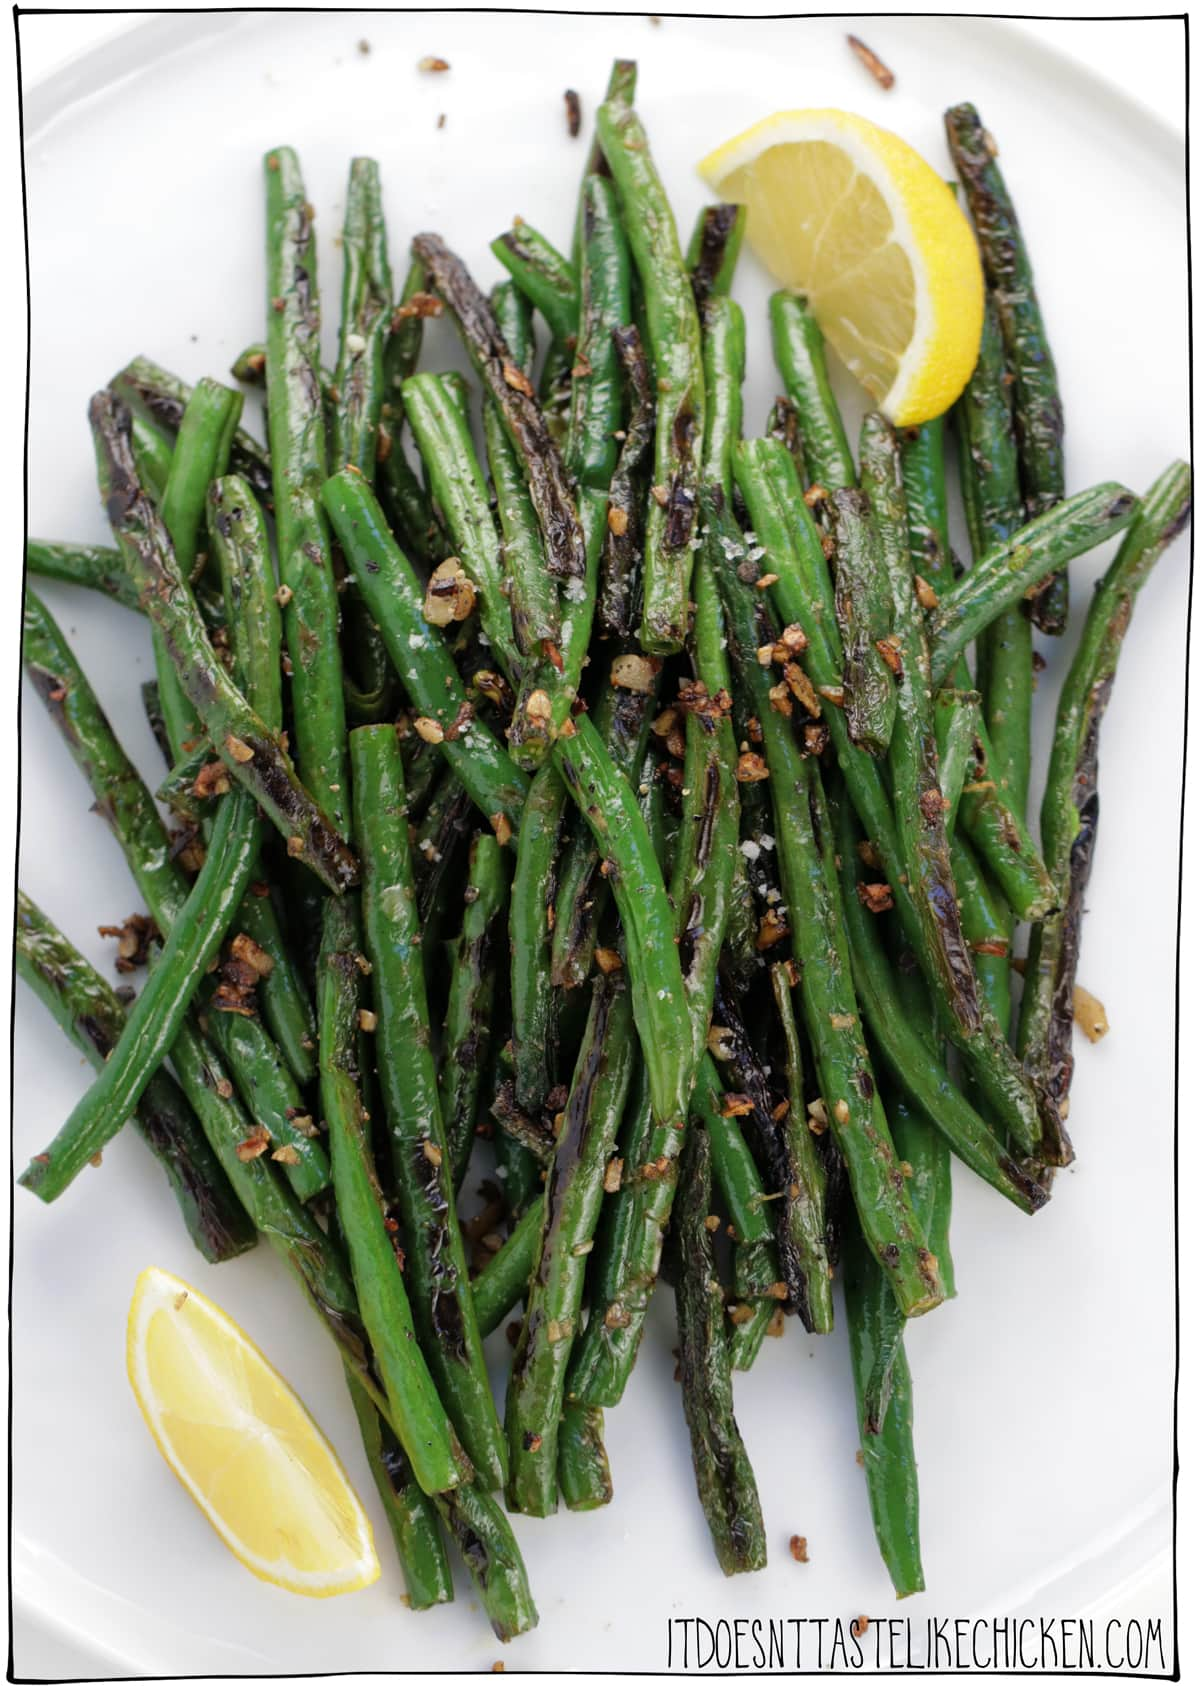 Garlic Sautéed Green Beans! Just 15 minutes to make and 6 ingredients, these green beans make the perfect side dish for any meal. But they are so tasty all on their own that you could even treat them as the main and serve them over pasta, or with rice for a super easy and delicious dinner. #itdoesnttastelikechicken #veganrecipes